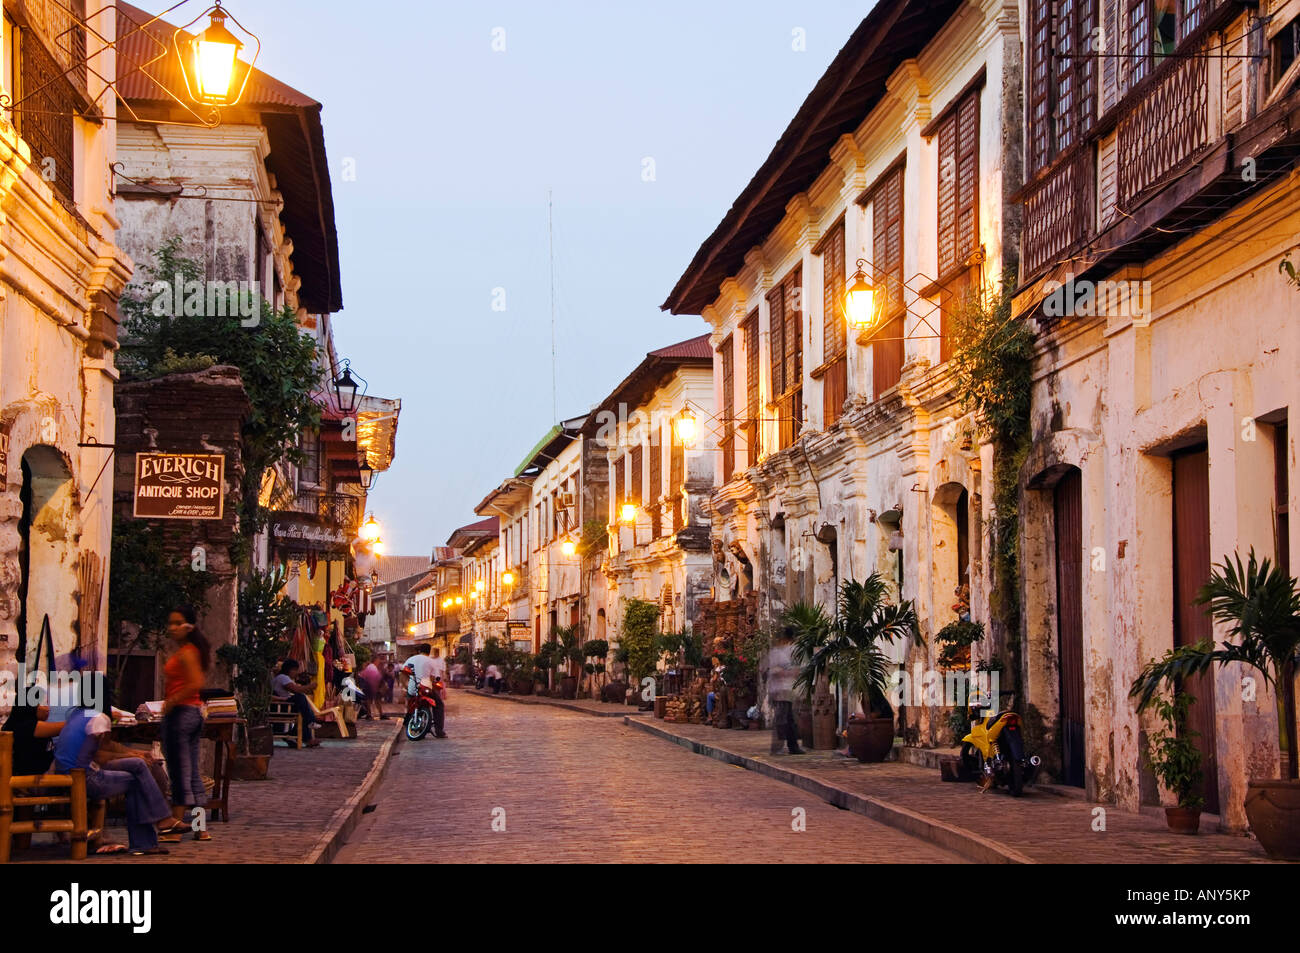 the province of ilocos norte Located in the town of paoay in ilocos norte, paoay sand dunes is actually part of the wide ilocos sand dunes which encompasses several towns of the province.